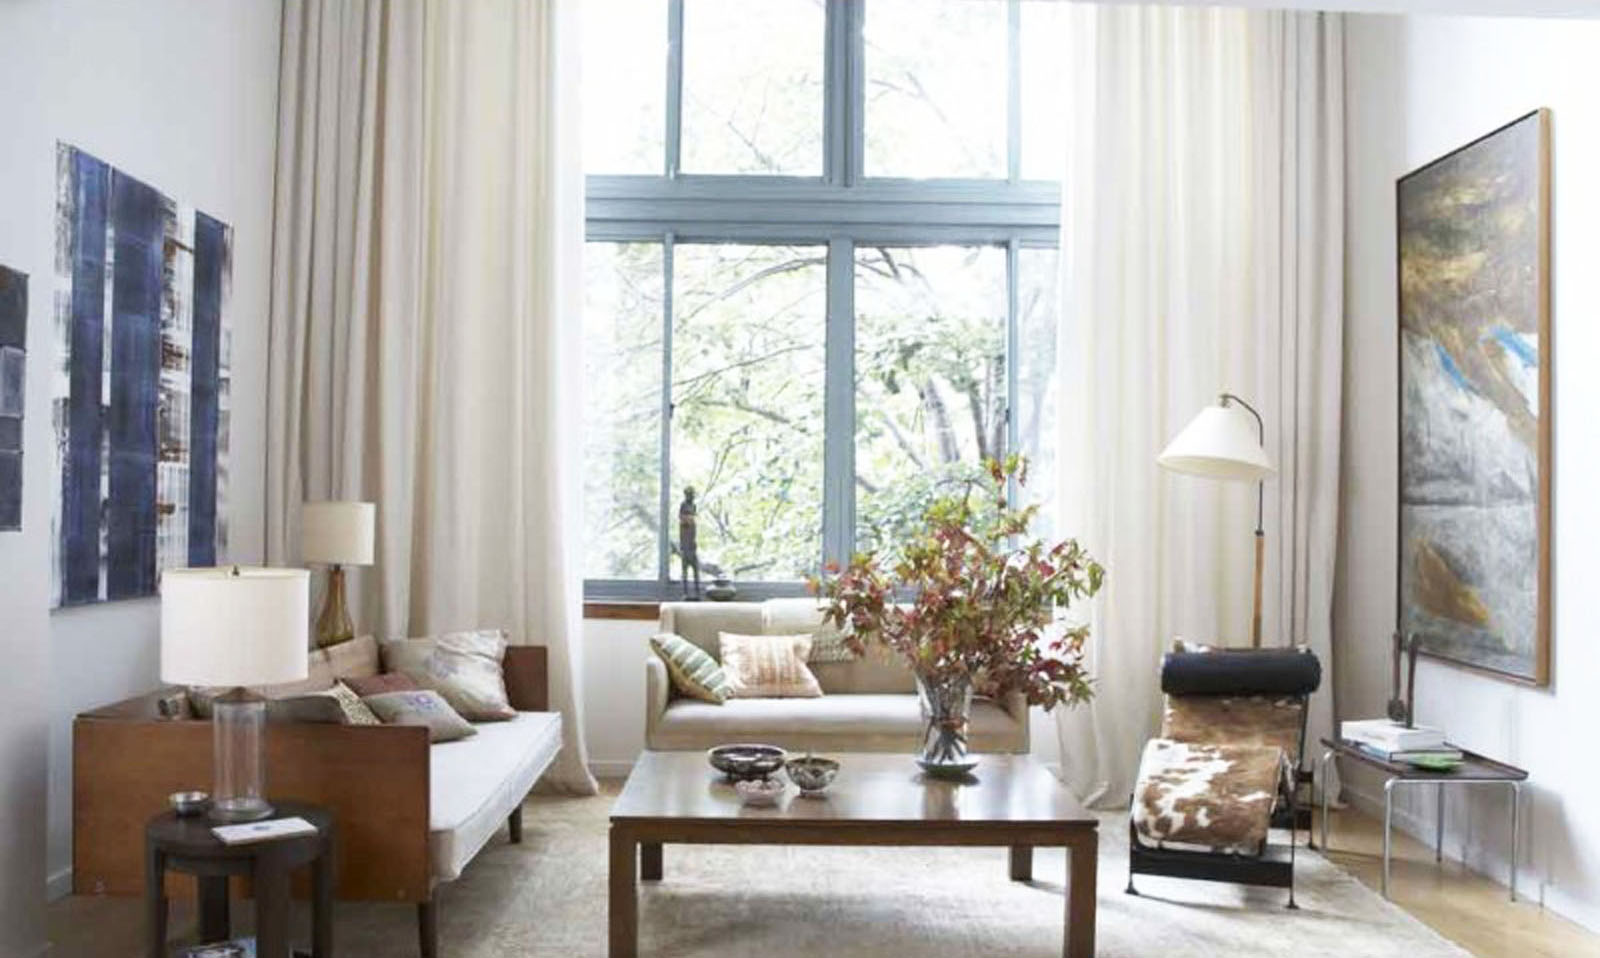 small-space-living-room-with-best-interior-paint-colors-with-living-room-colors-schemes-and-big-window-design-and-luxury-curtain